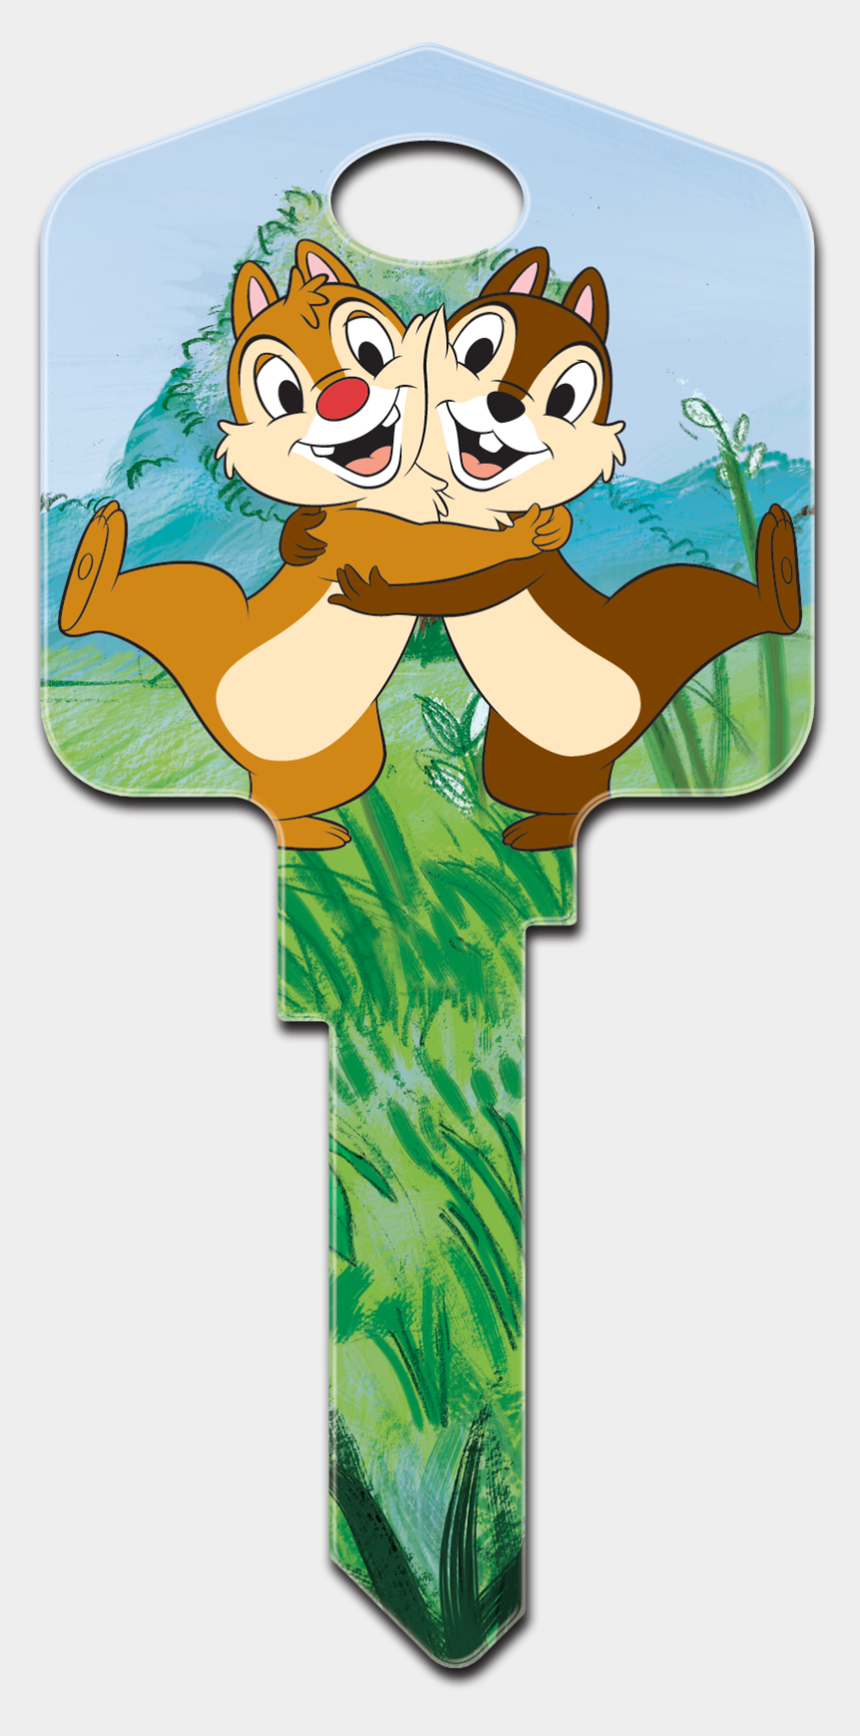 chip and dale clipart, Cartoons - Same Image Front & Back - Cartoon